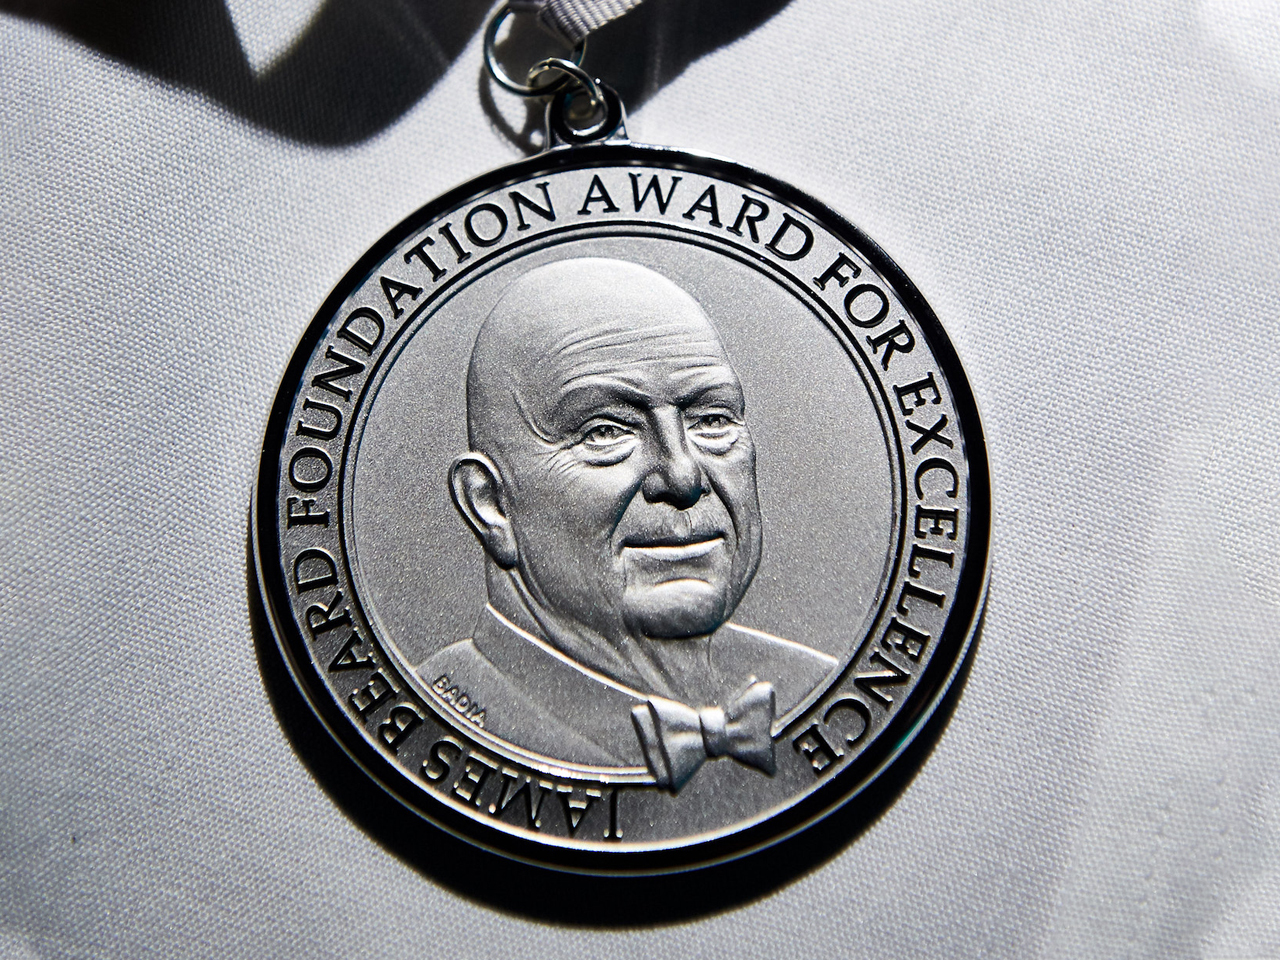 The James Beard Foundation